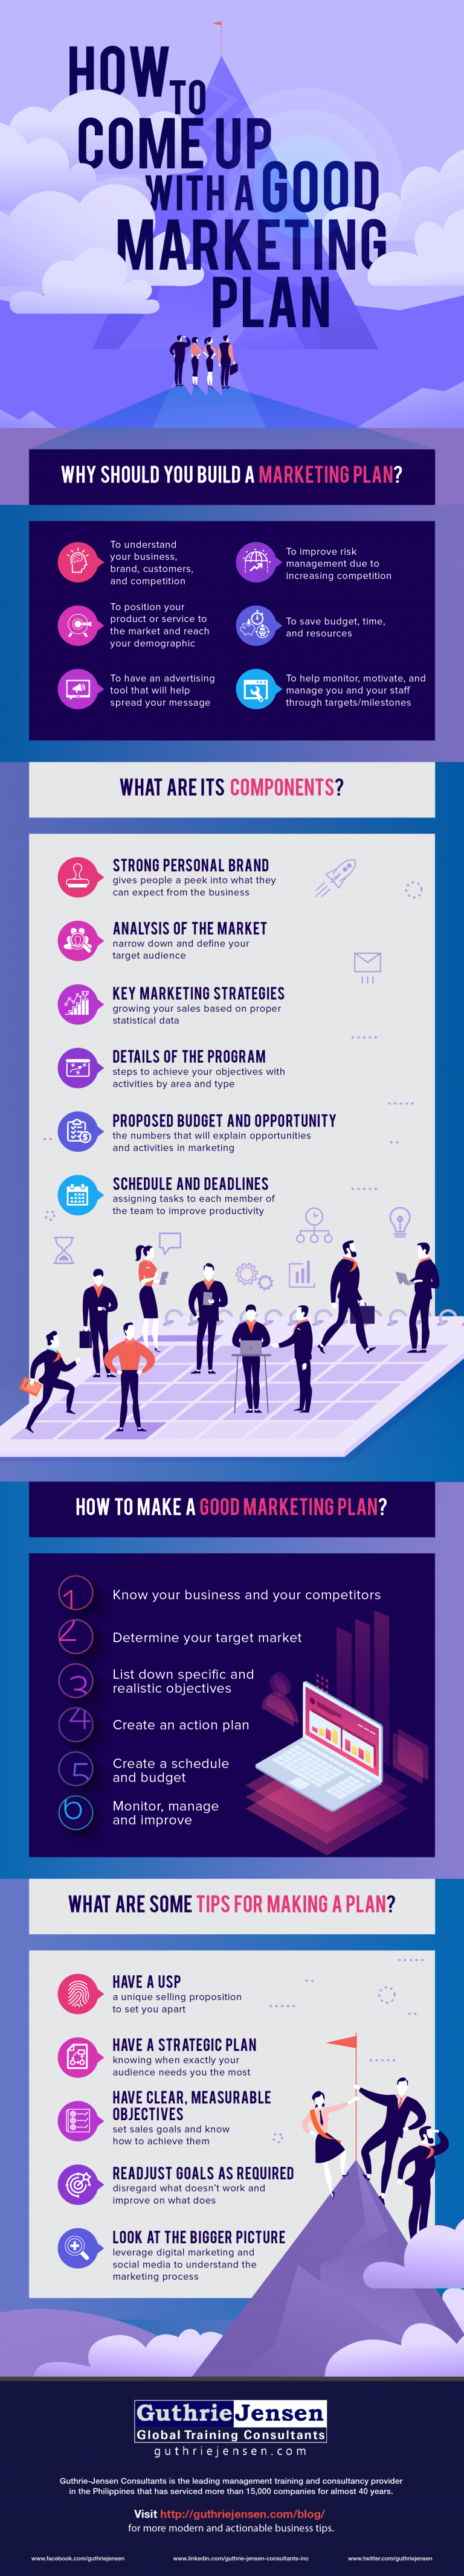 top tips for a great small business marketing plan infographic